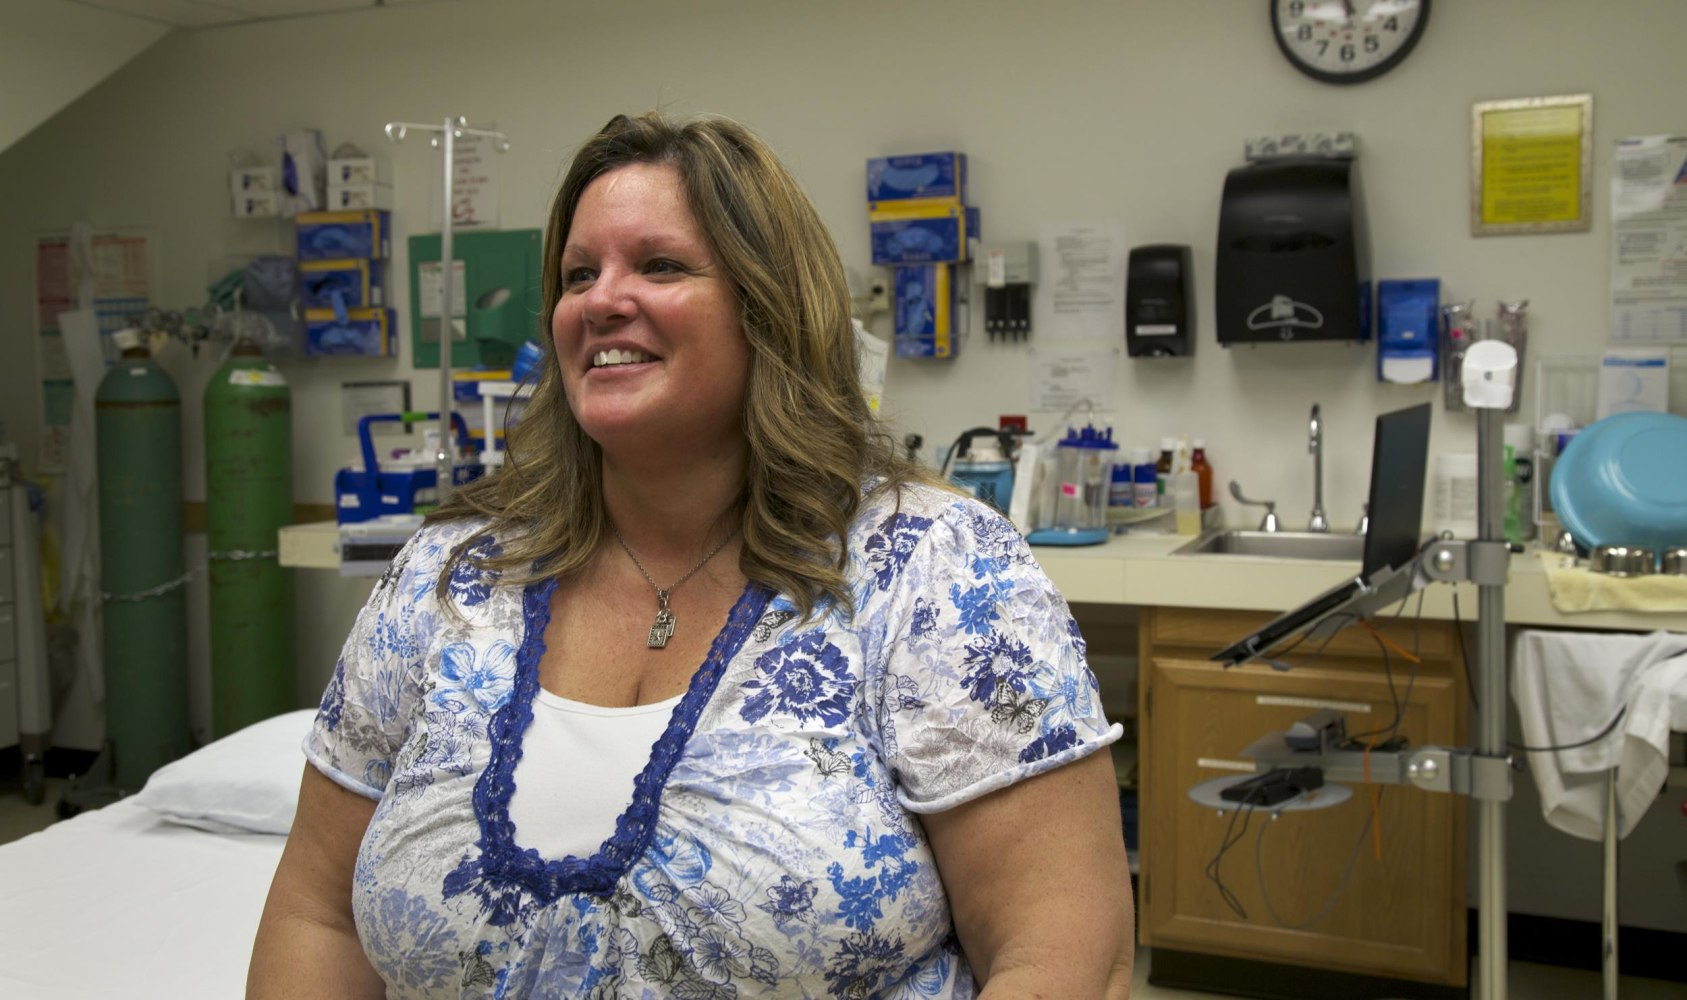 Montana mccone county circle - Nancy Rosaaen The Ceo Of The Mccone County Health Center Sits In The County S One Bed Emergency Room In Circle Mont For Years This Town Had A Single